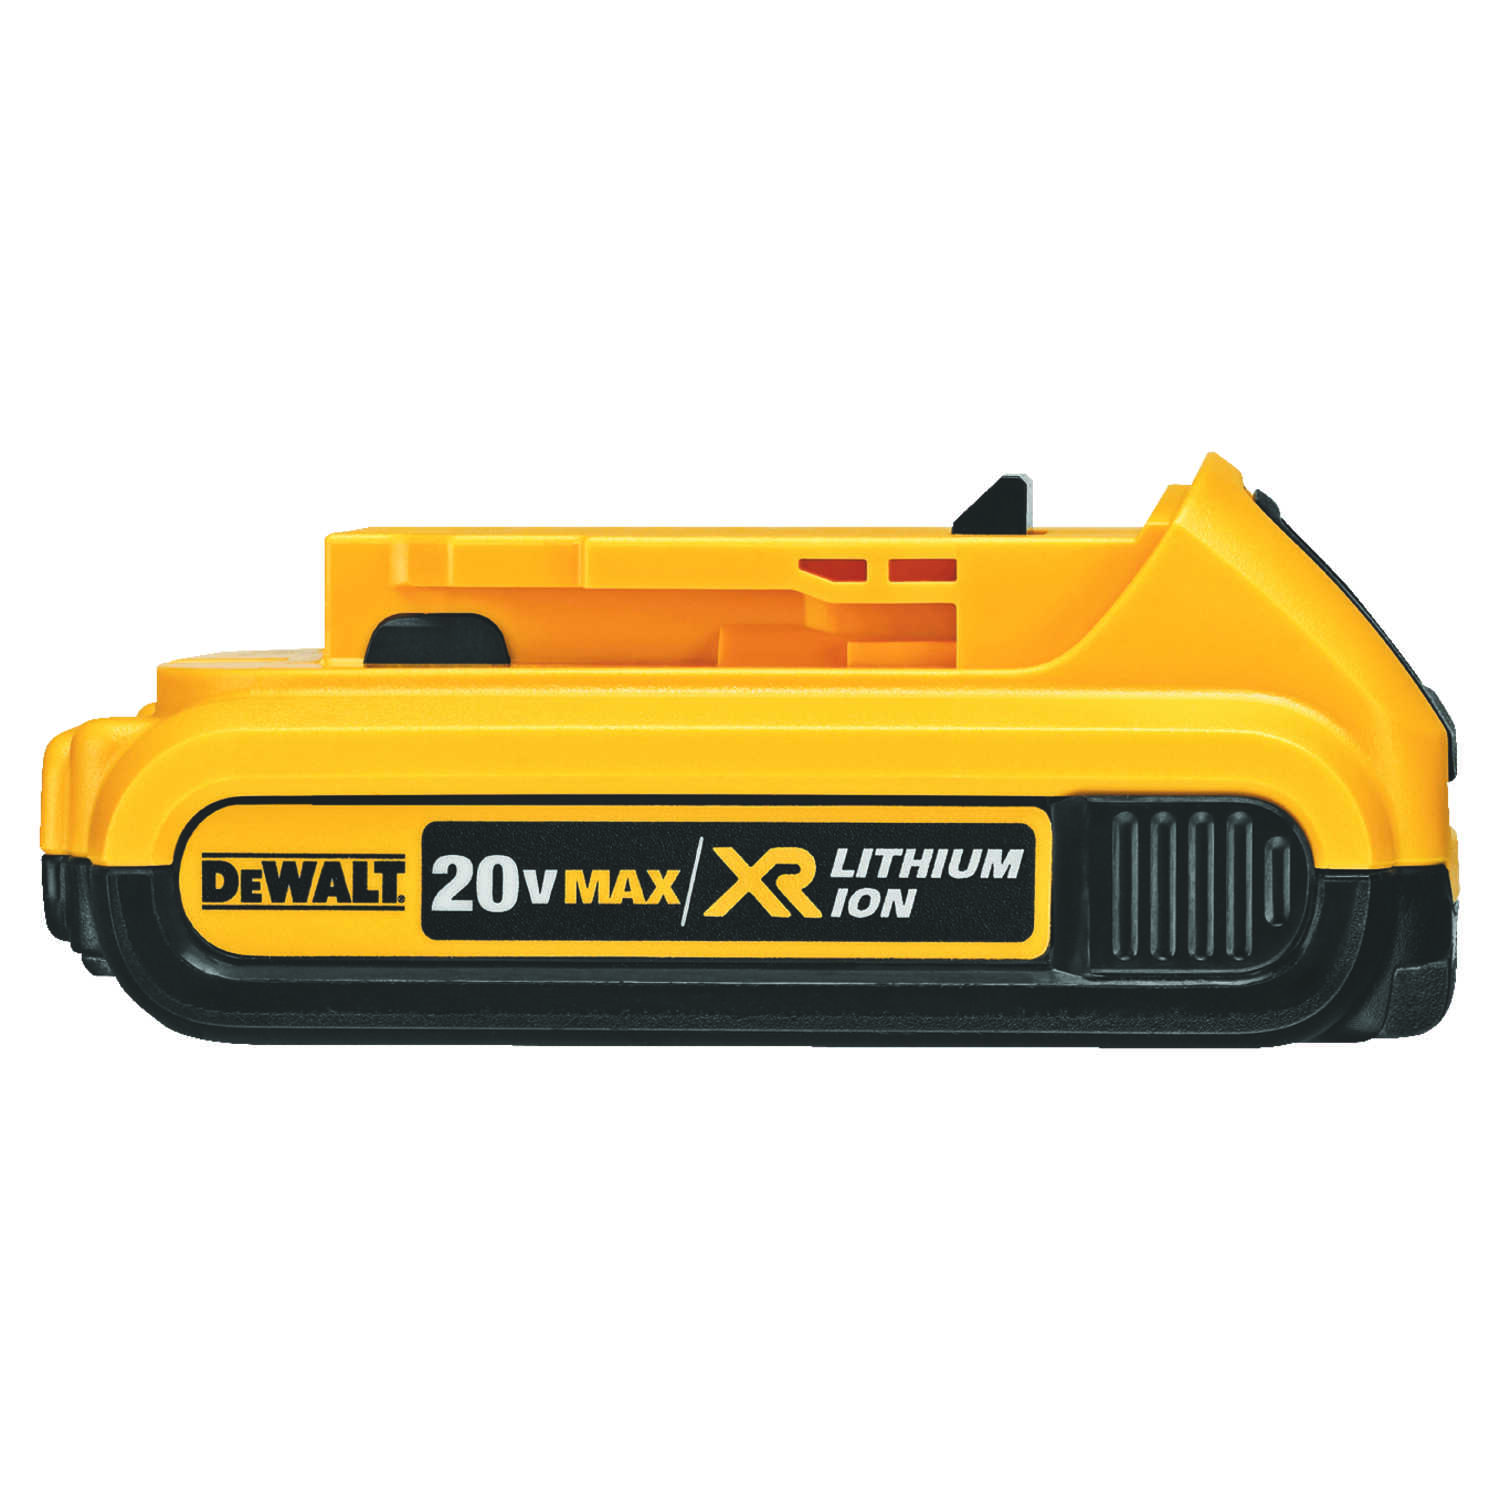 DeWalt  20V MAX XR  20 volt Lithium-Ion  Compact Battery Pack  1 pc.